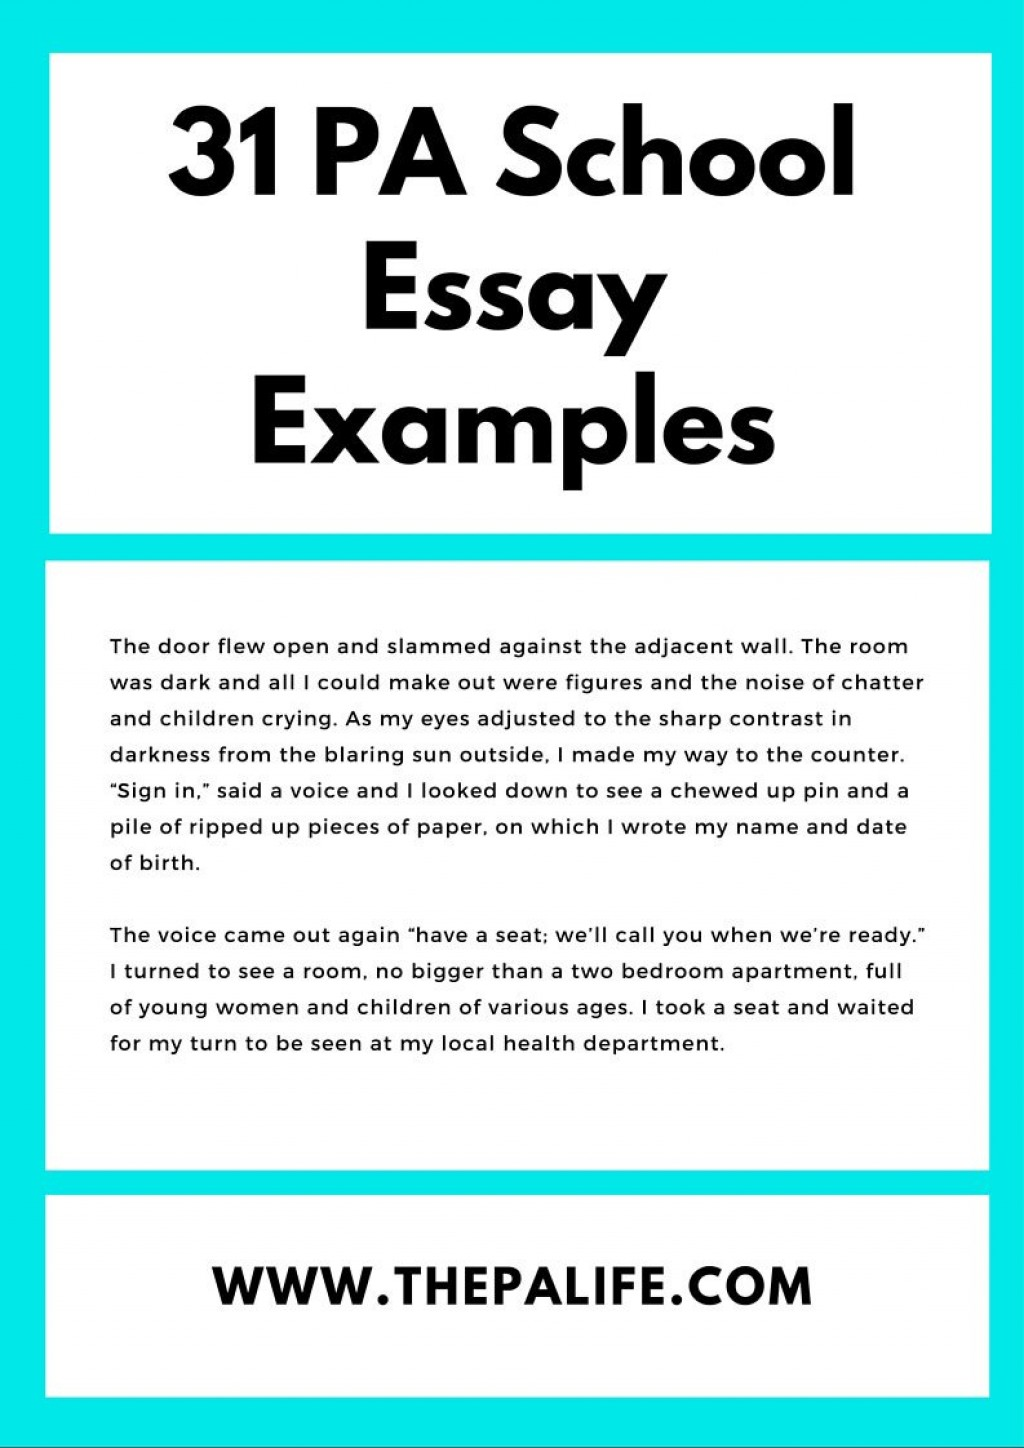 011 Physician Assistant School Essays And Samples Introduce Yourself Sample Words Dreaded Essay 100 Large